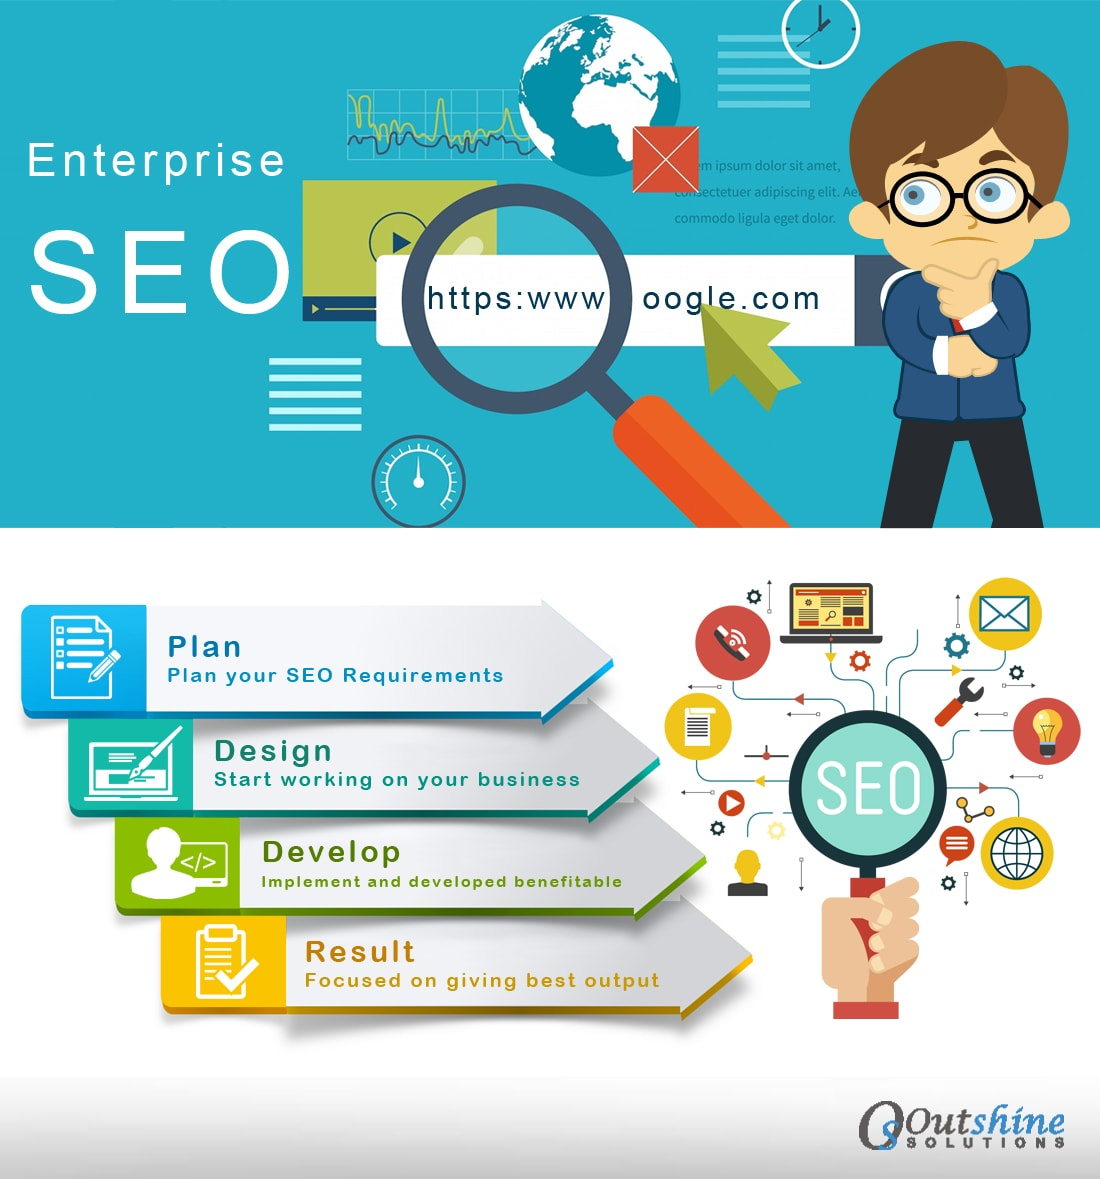 Enterprise SEO Features